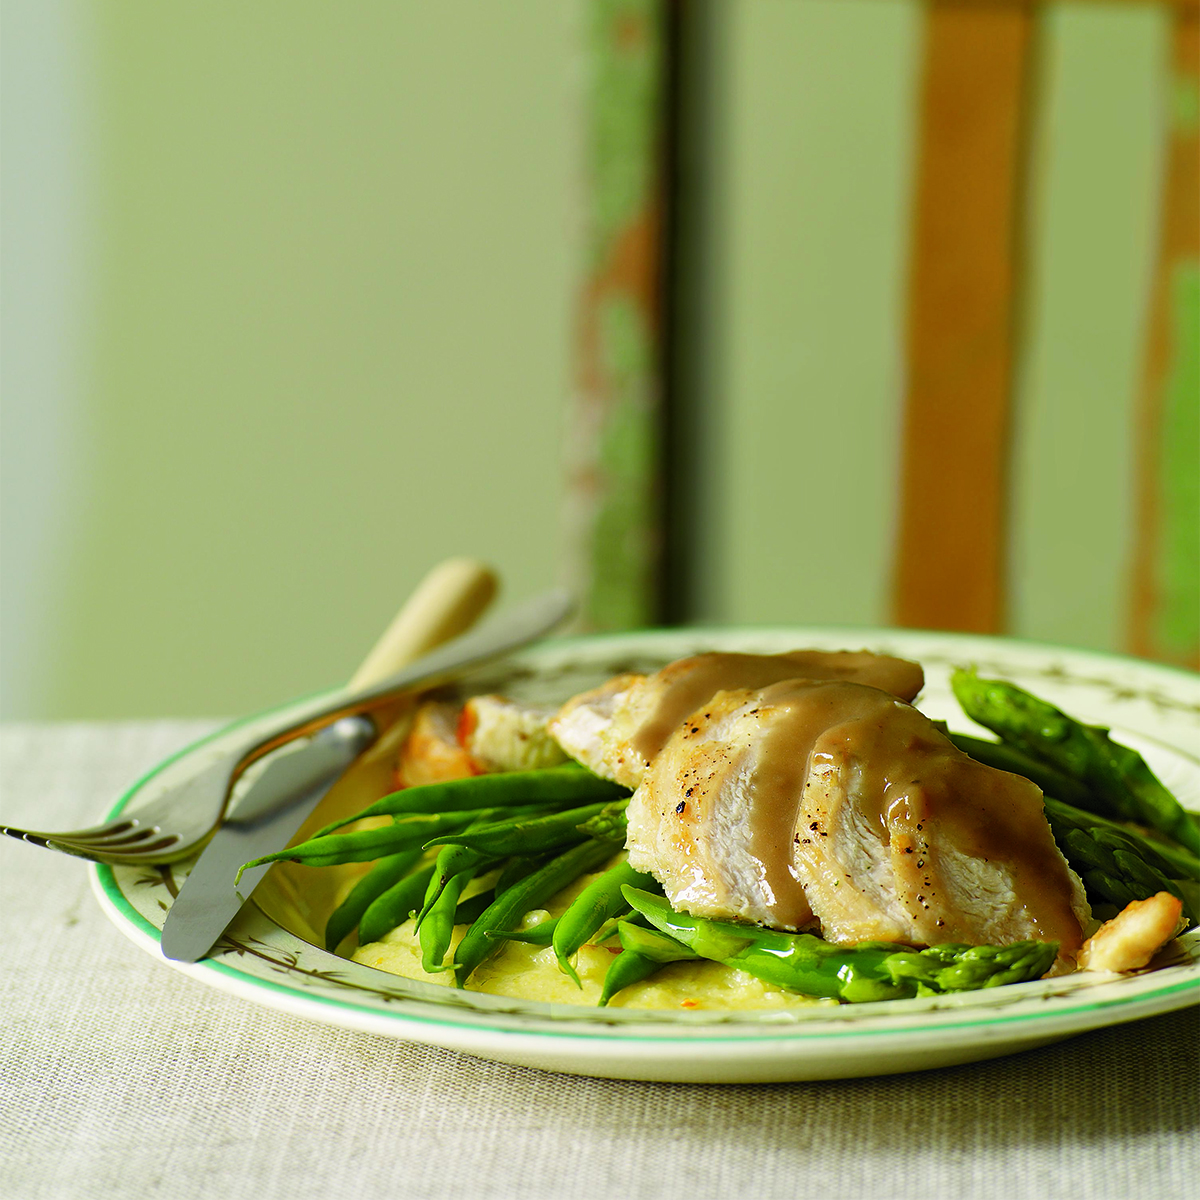 orange balsamic chicken with asparagus, green beans, and polenta